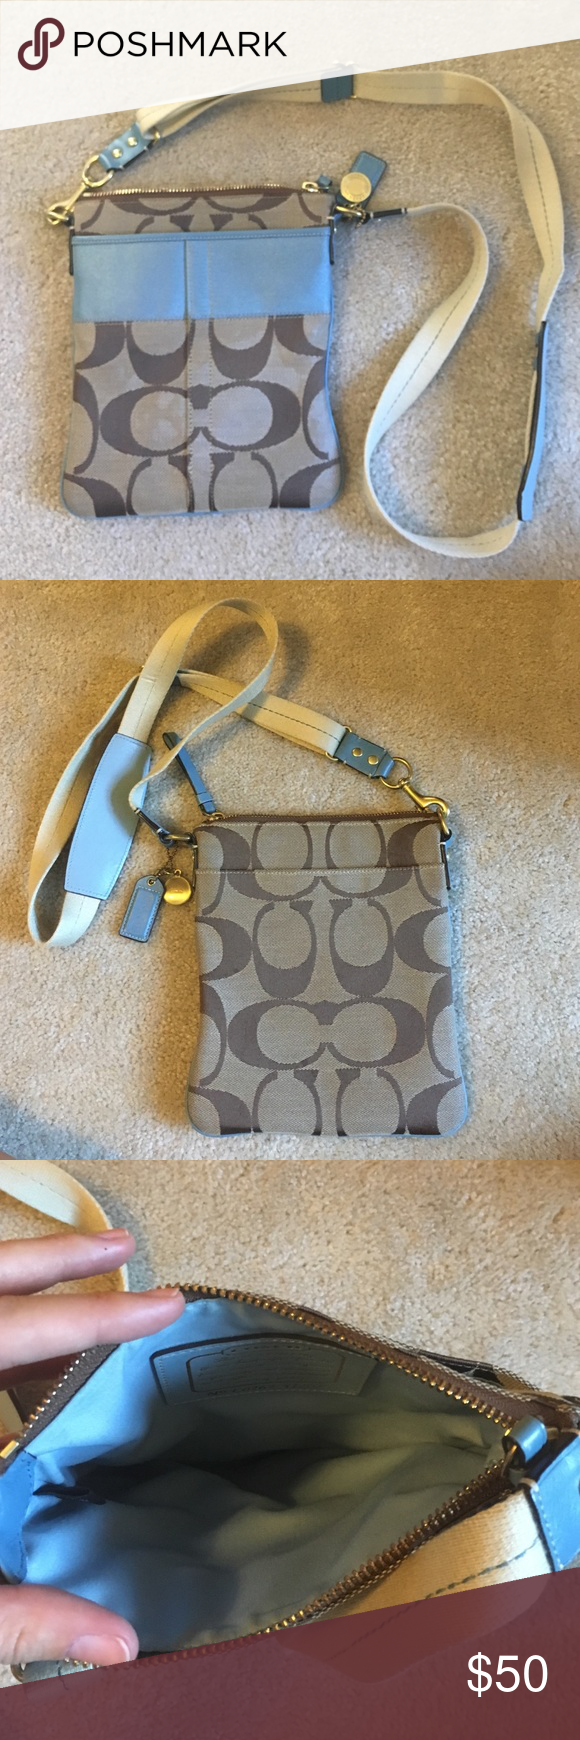 Coach satchel Tan and light blue Coach satchel. Stain on front of satchel shown in picture above. Adjustable strap and light blue interior fabric Coach Bags Satchels